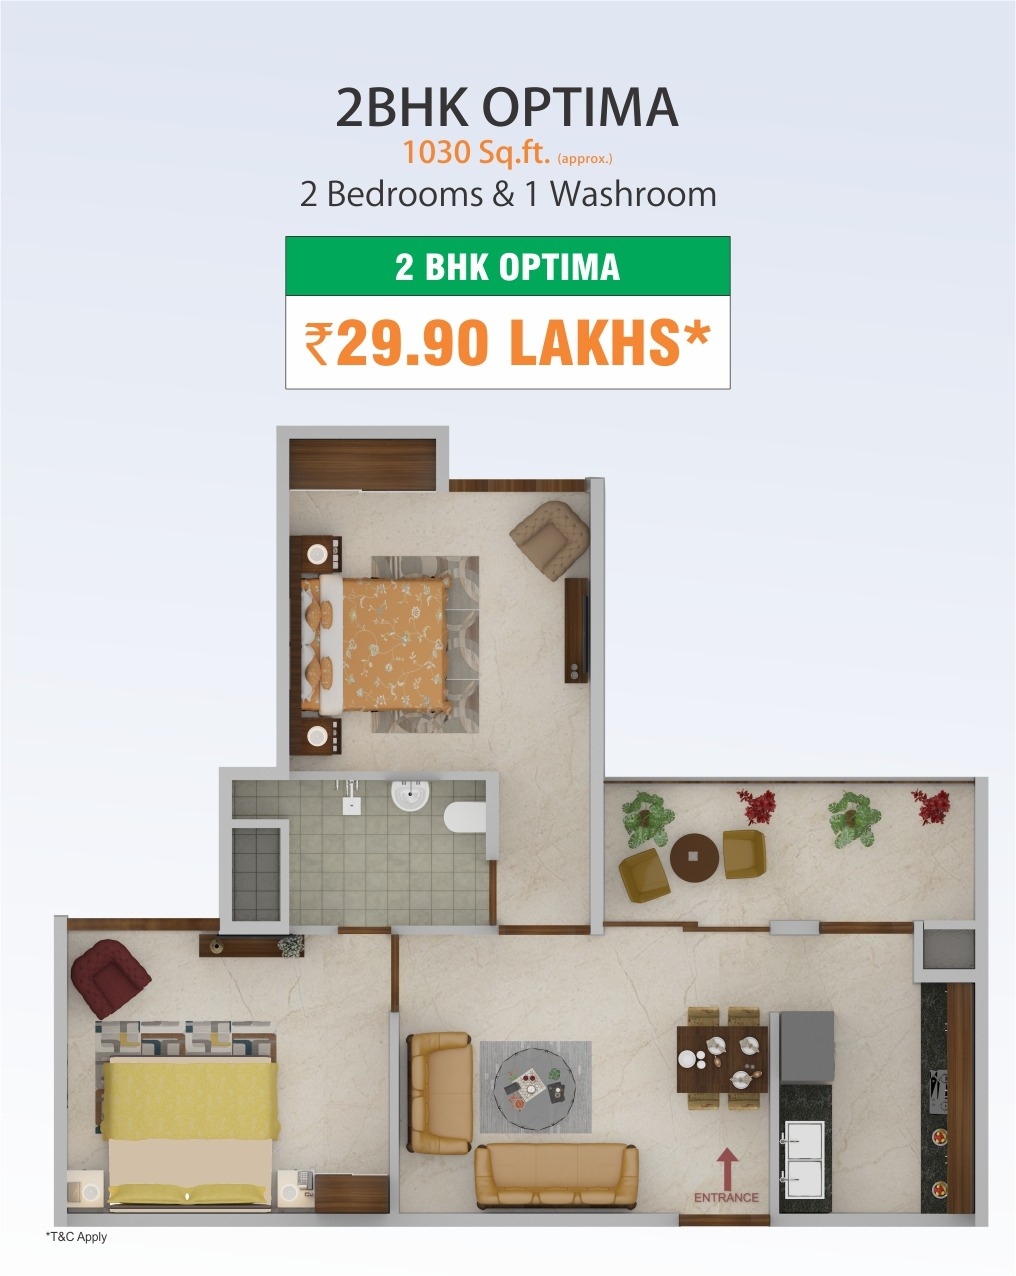 2 BHK Optima Flats in Mohali @29.90 Lakhs - 1030 Sq.Ft.